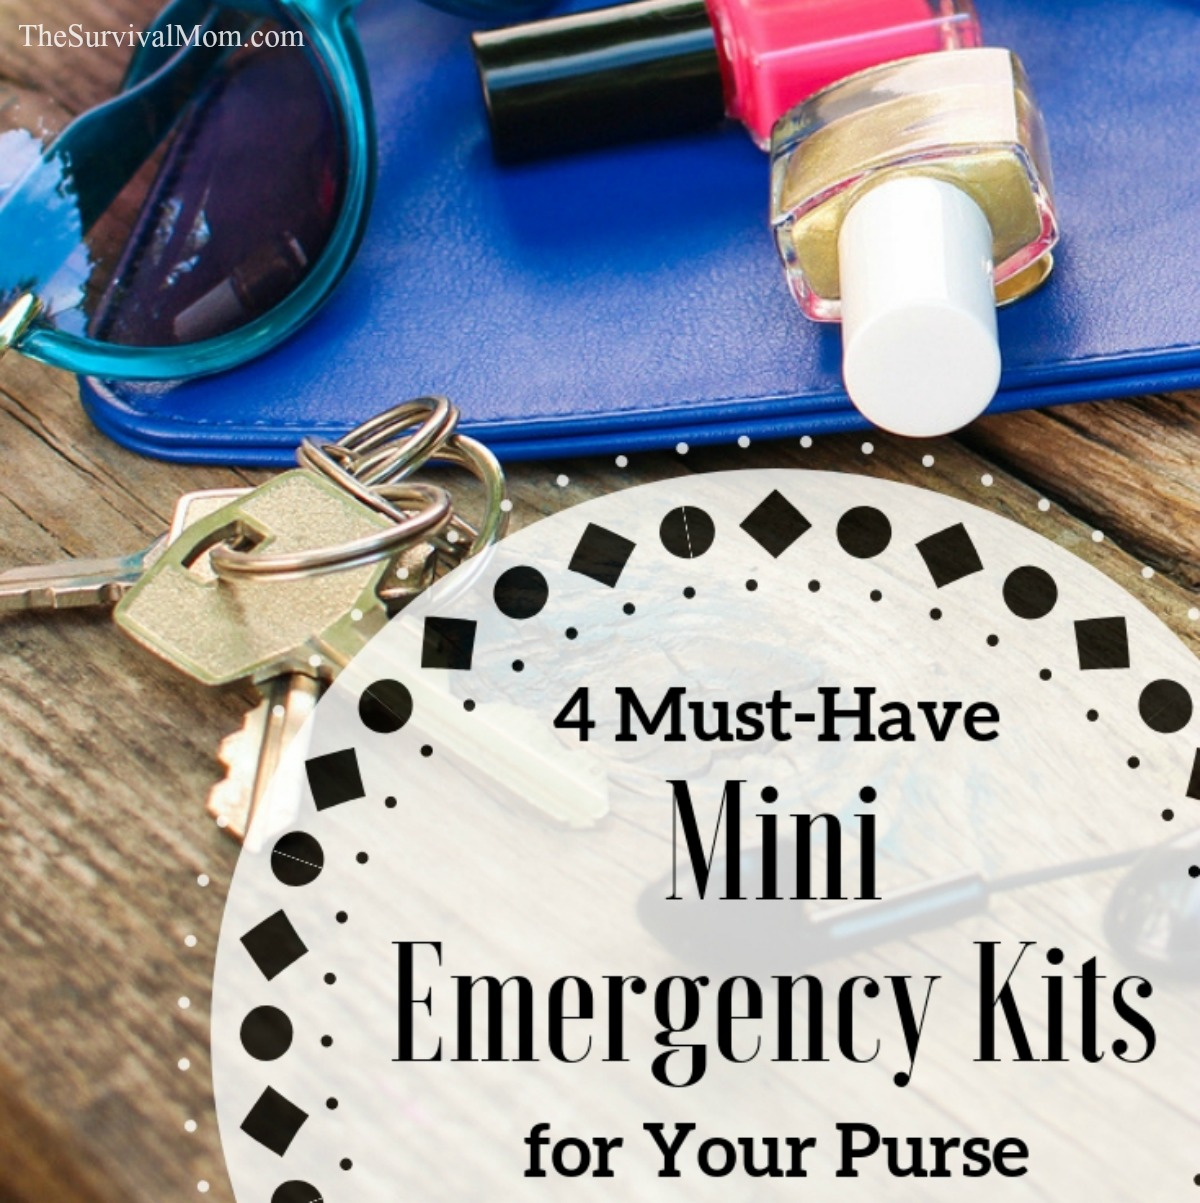 emergency kit, mini emergency kit, small emergency kit, medical kit, emergency kit for purse